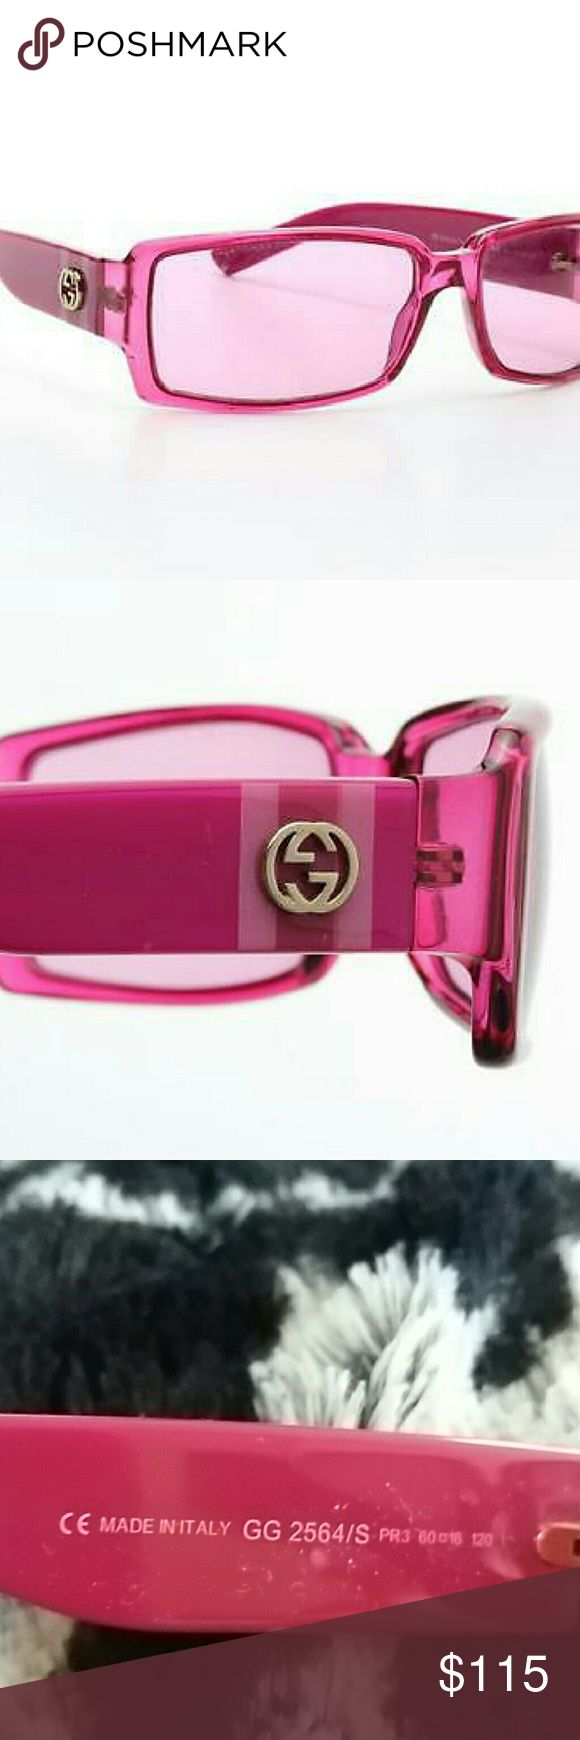 Pink Gucci Sunglasses  Perfect Condition When you dream of a world of Pink these Gucci sunglasses are a must! Gucci Accessories Sunglasses